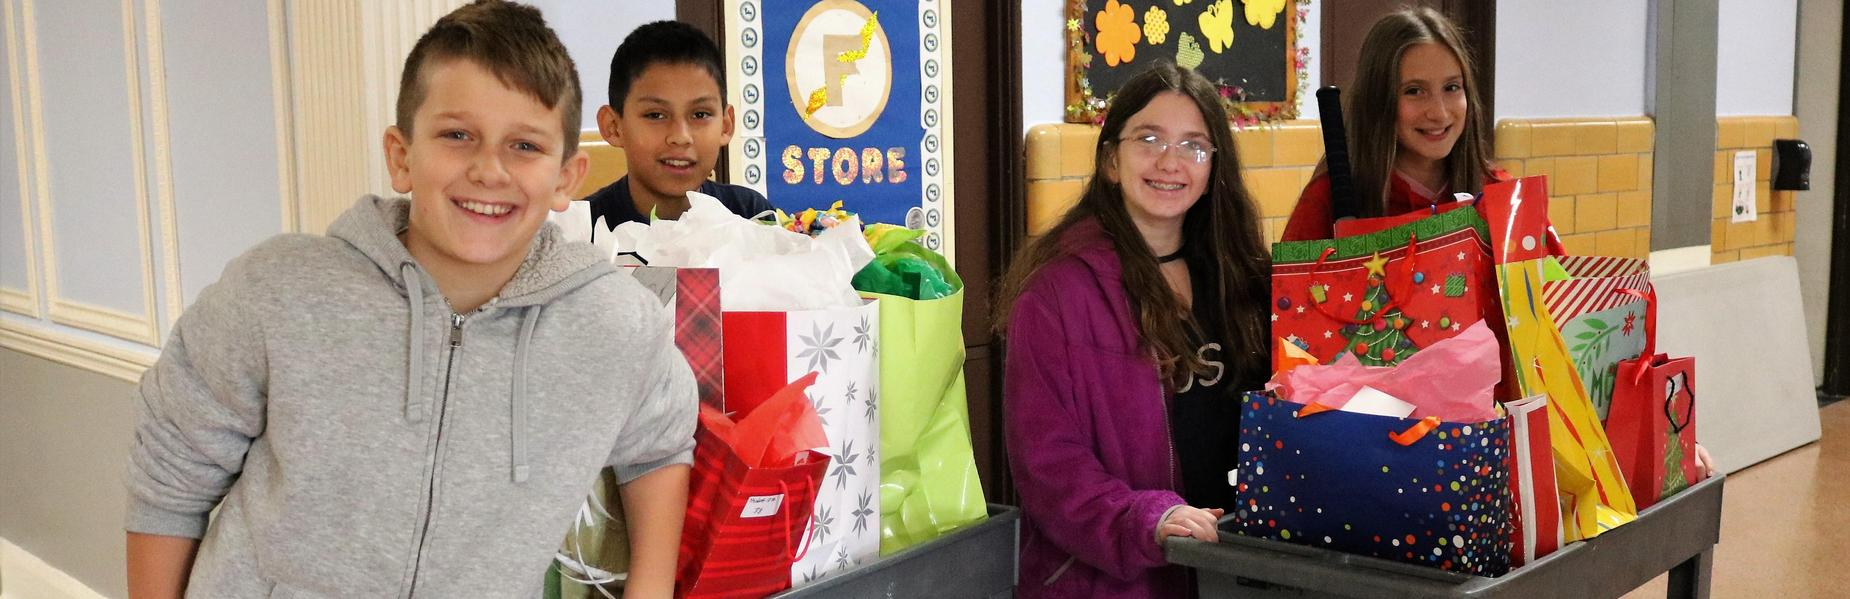 Franklin 5th graders pose with holiday gift donations to bring holiday cheer to others.